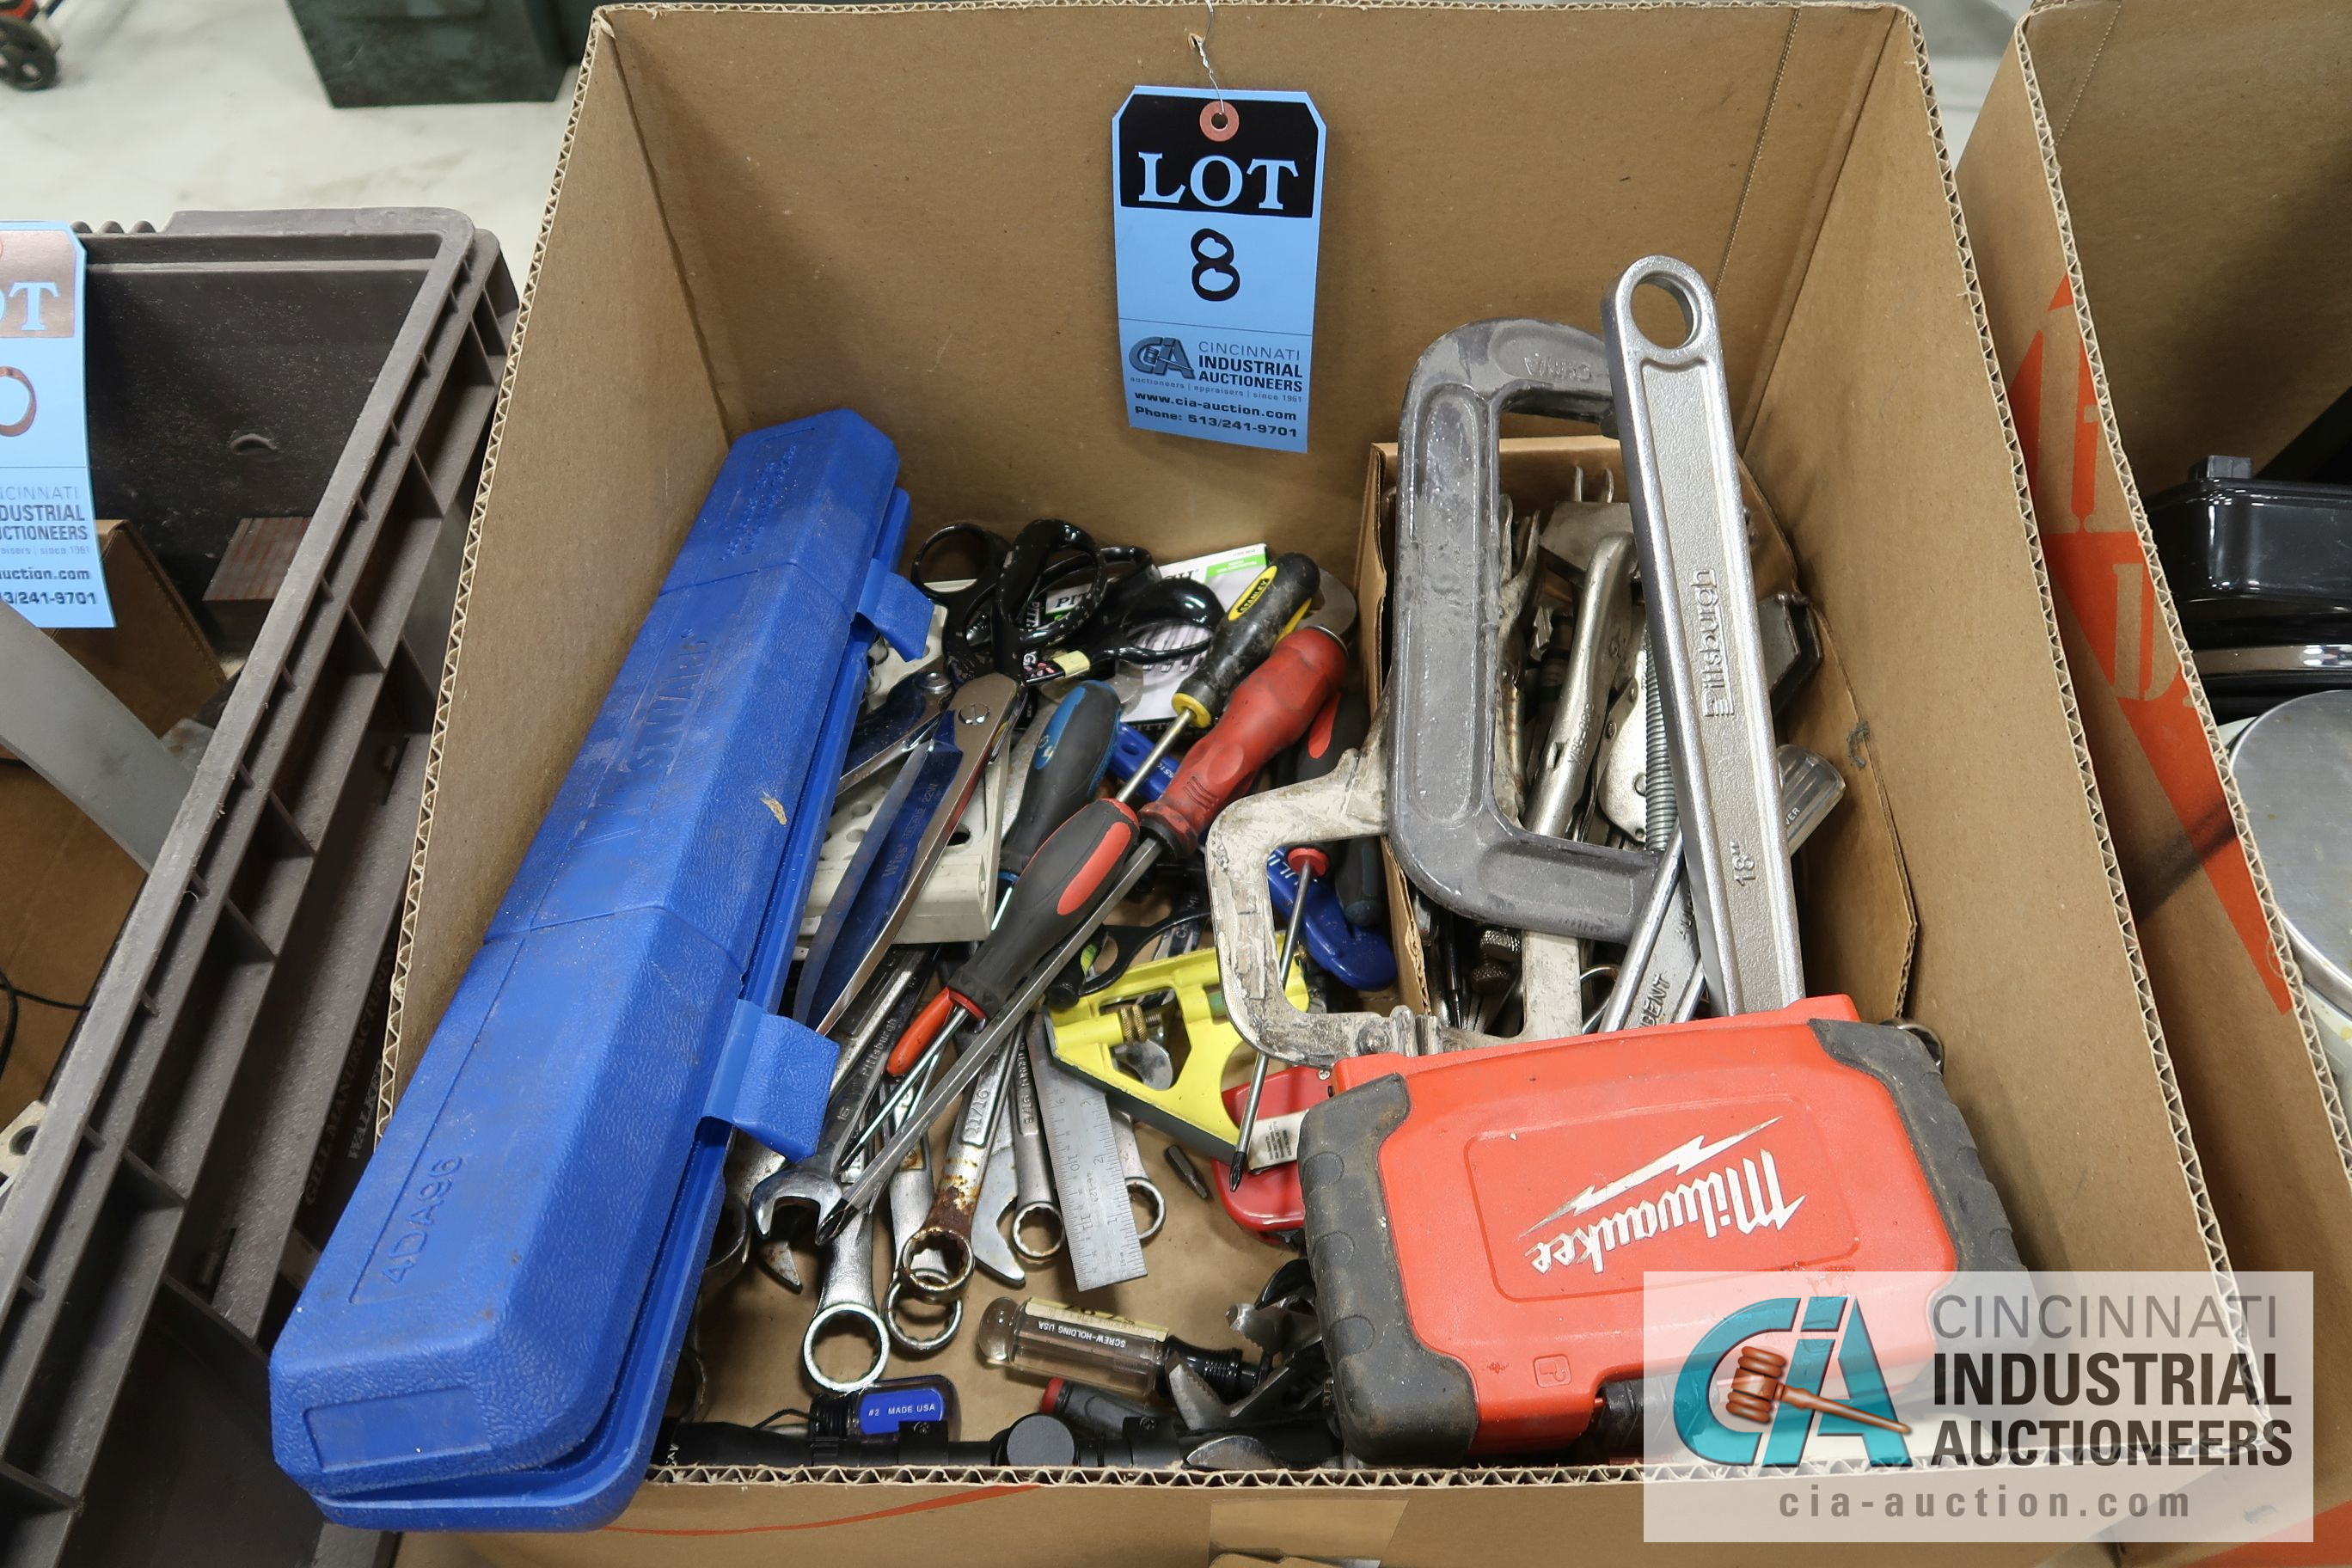 (LOT) MISCELLANEOUS HAND AND MAINTENANCE TOOLS